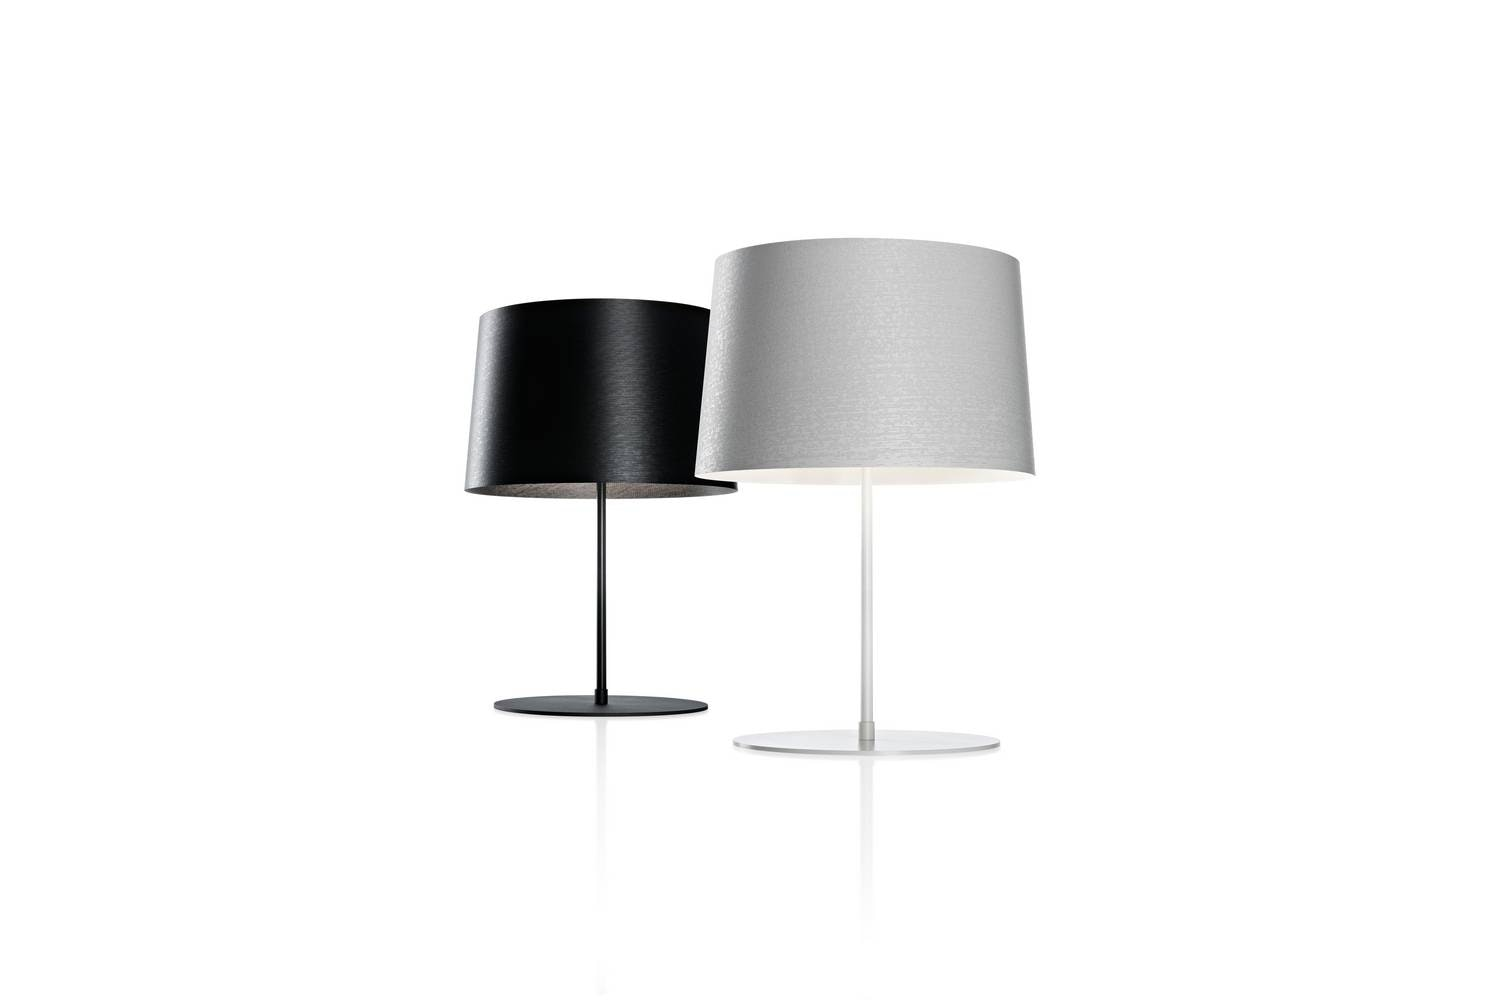 Twiggy XL Table Lamp by Marc Sadler for Foscarini